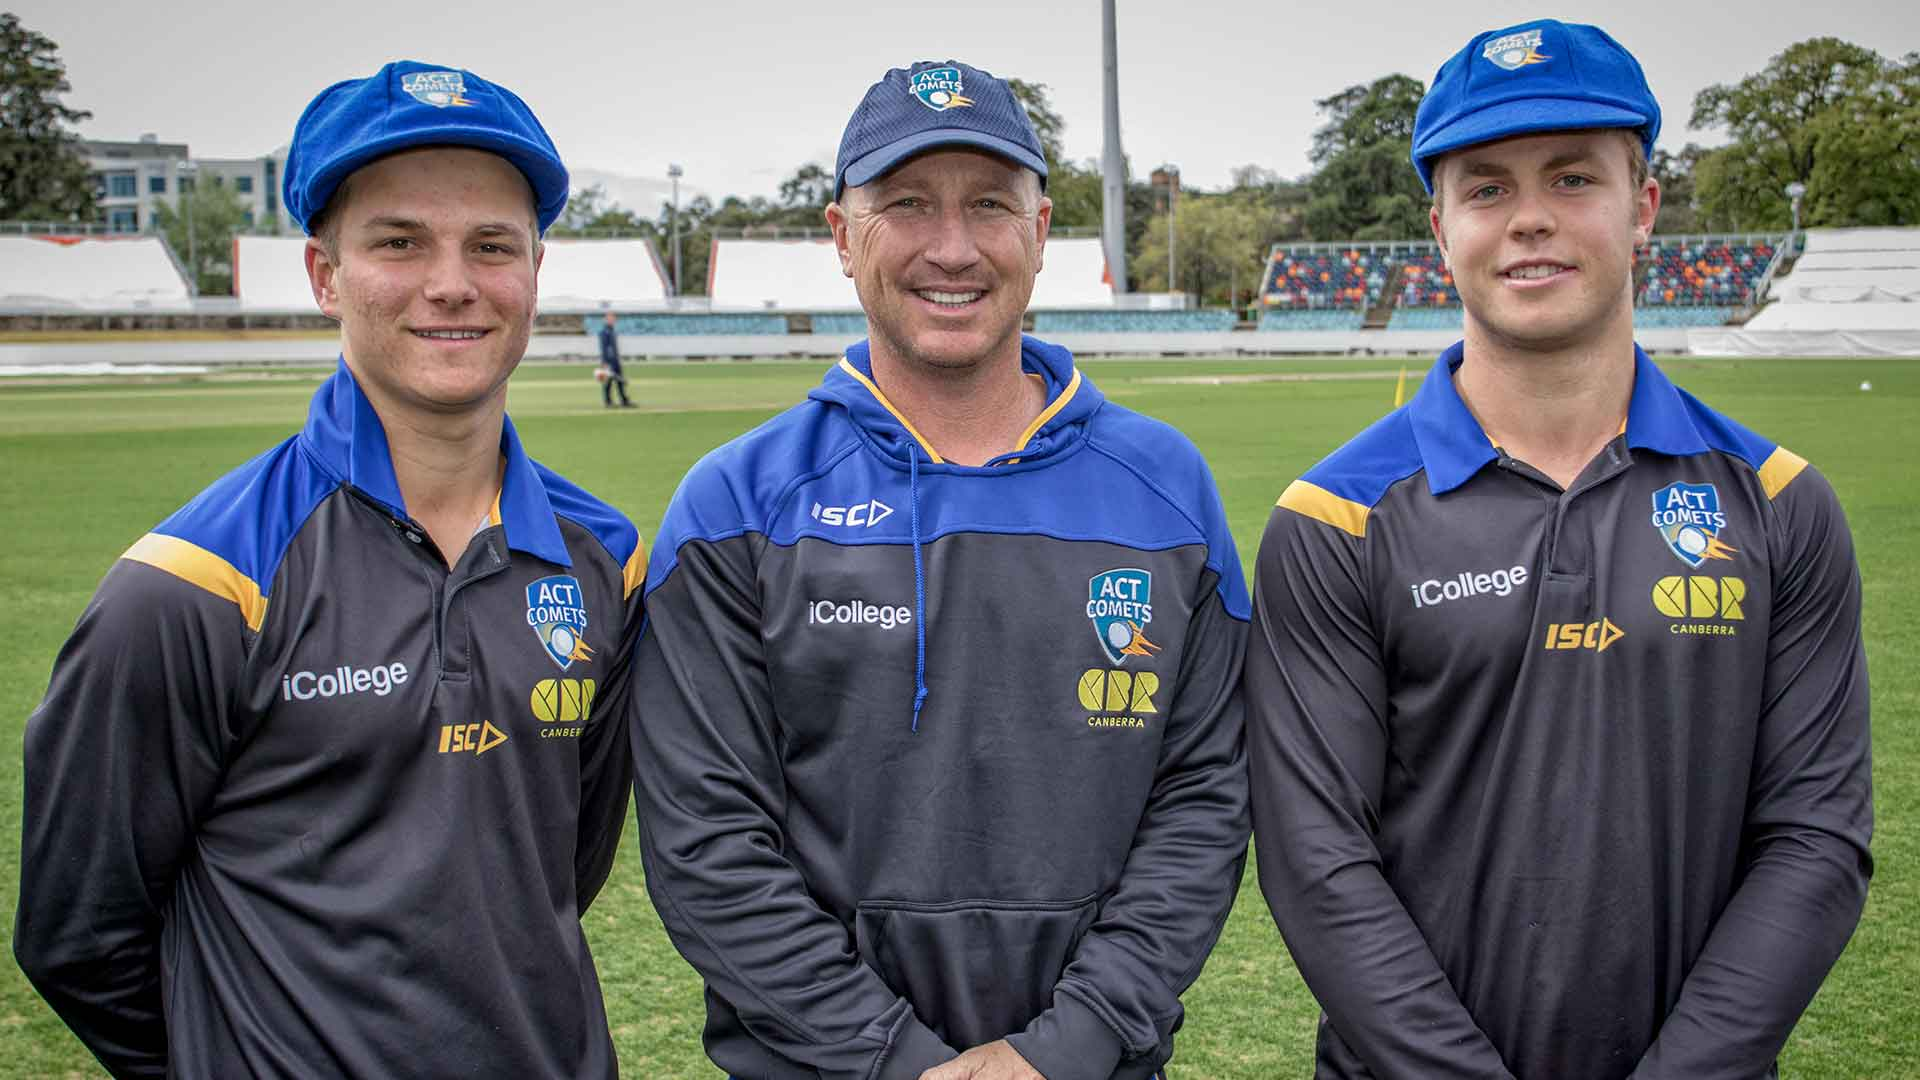 Comets and Australian legend Brad Haddin conducts the cap presentation for iCollege ACT Comets debutants Tom Vane-Tempest and Daniel Solway.